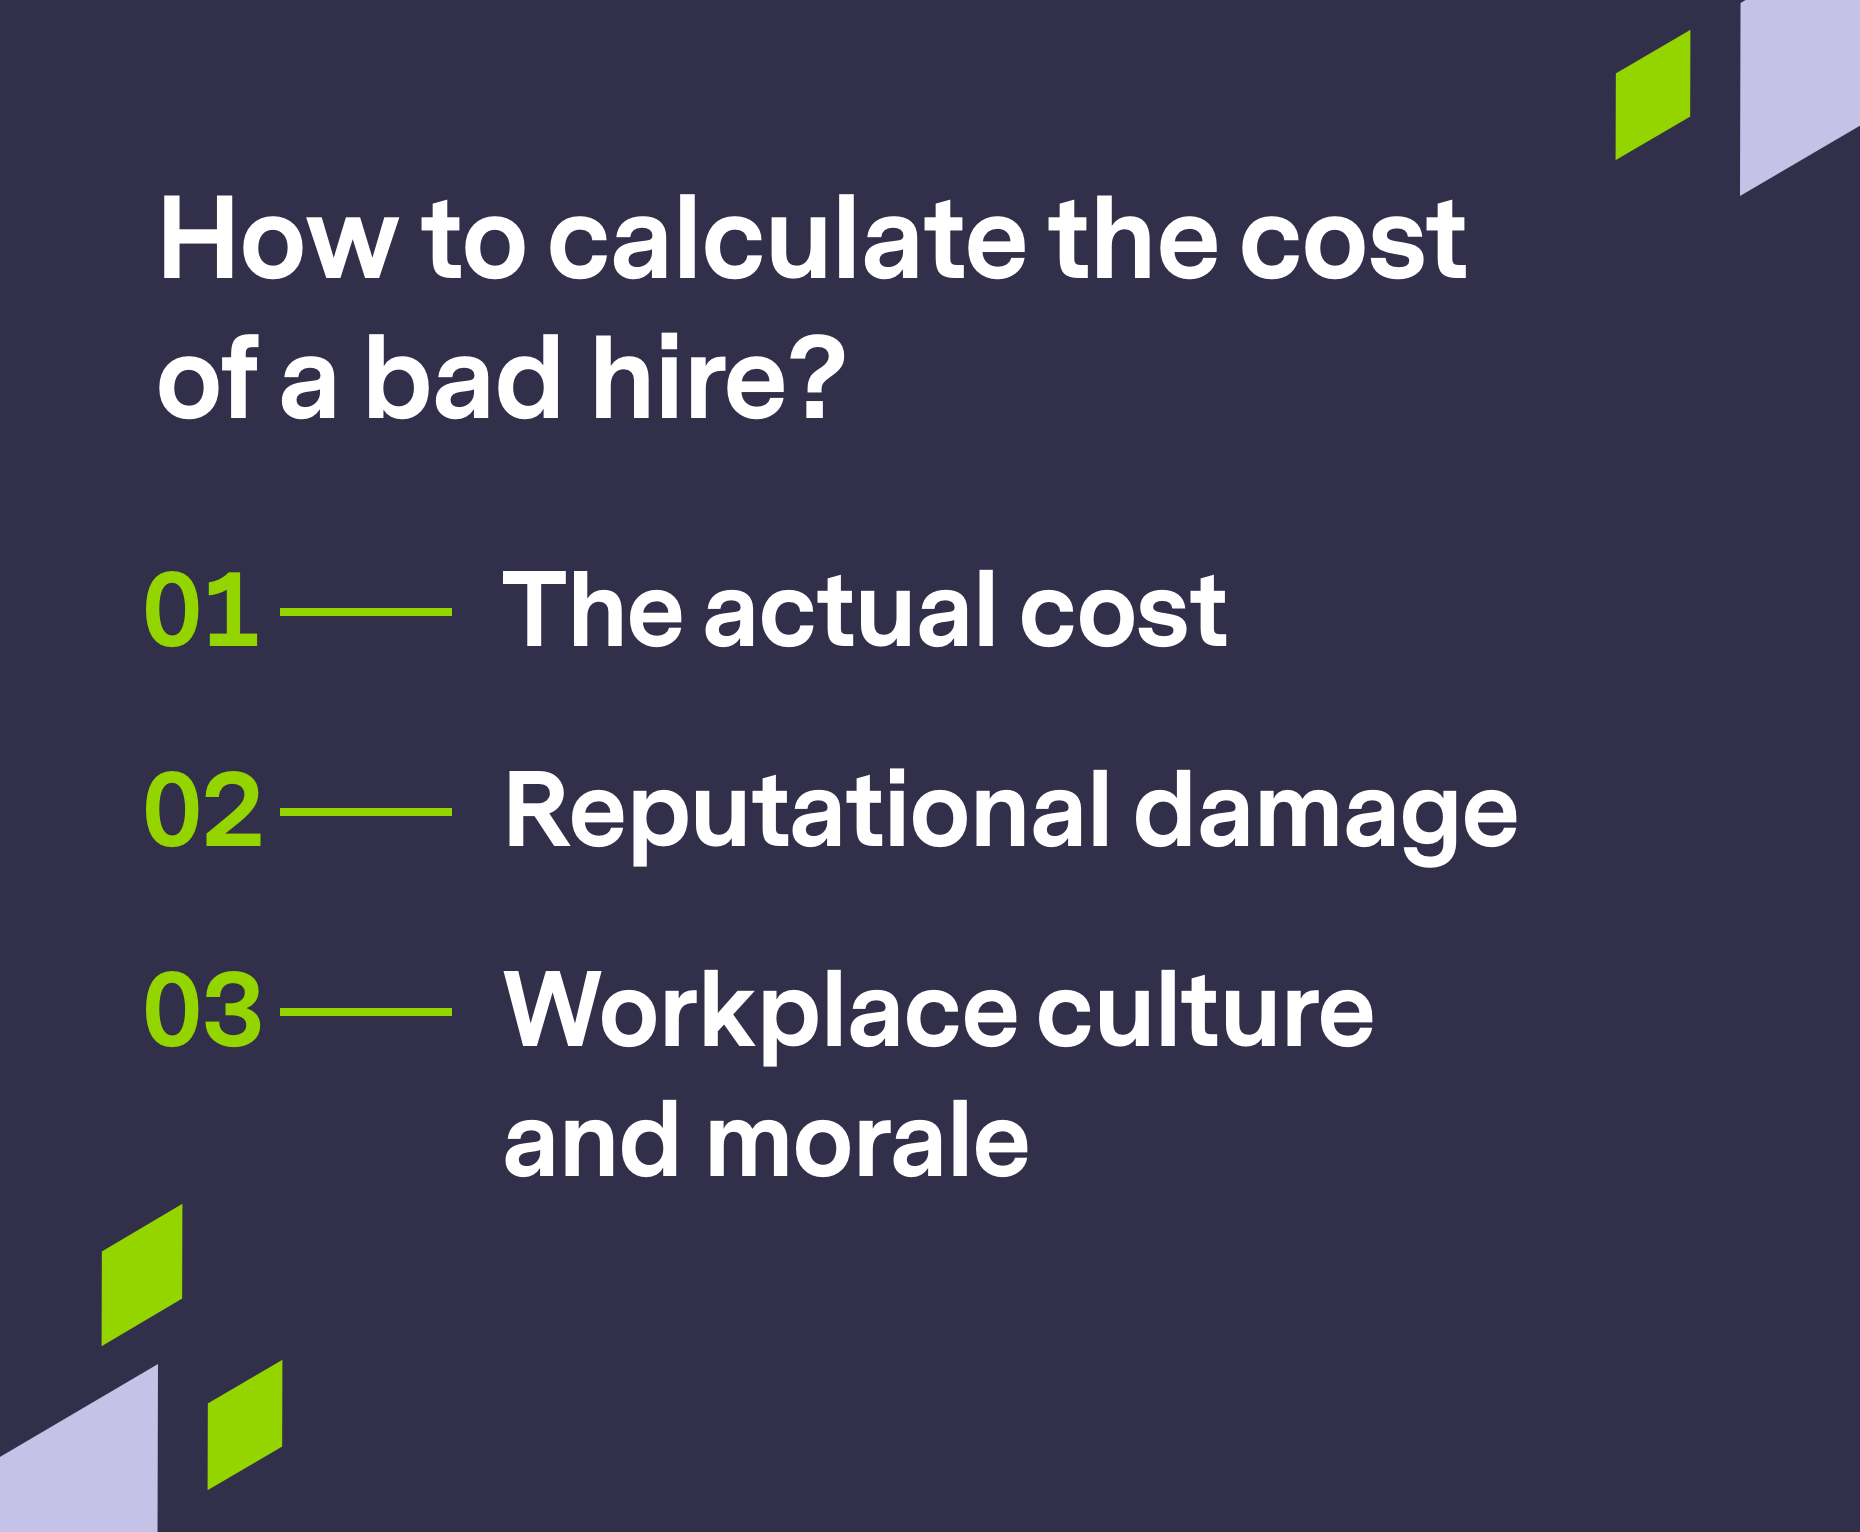 Branded graphic to calculate the cost of a bad hire